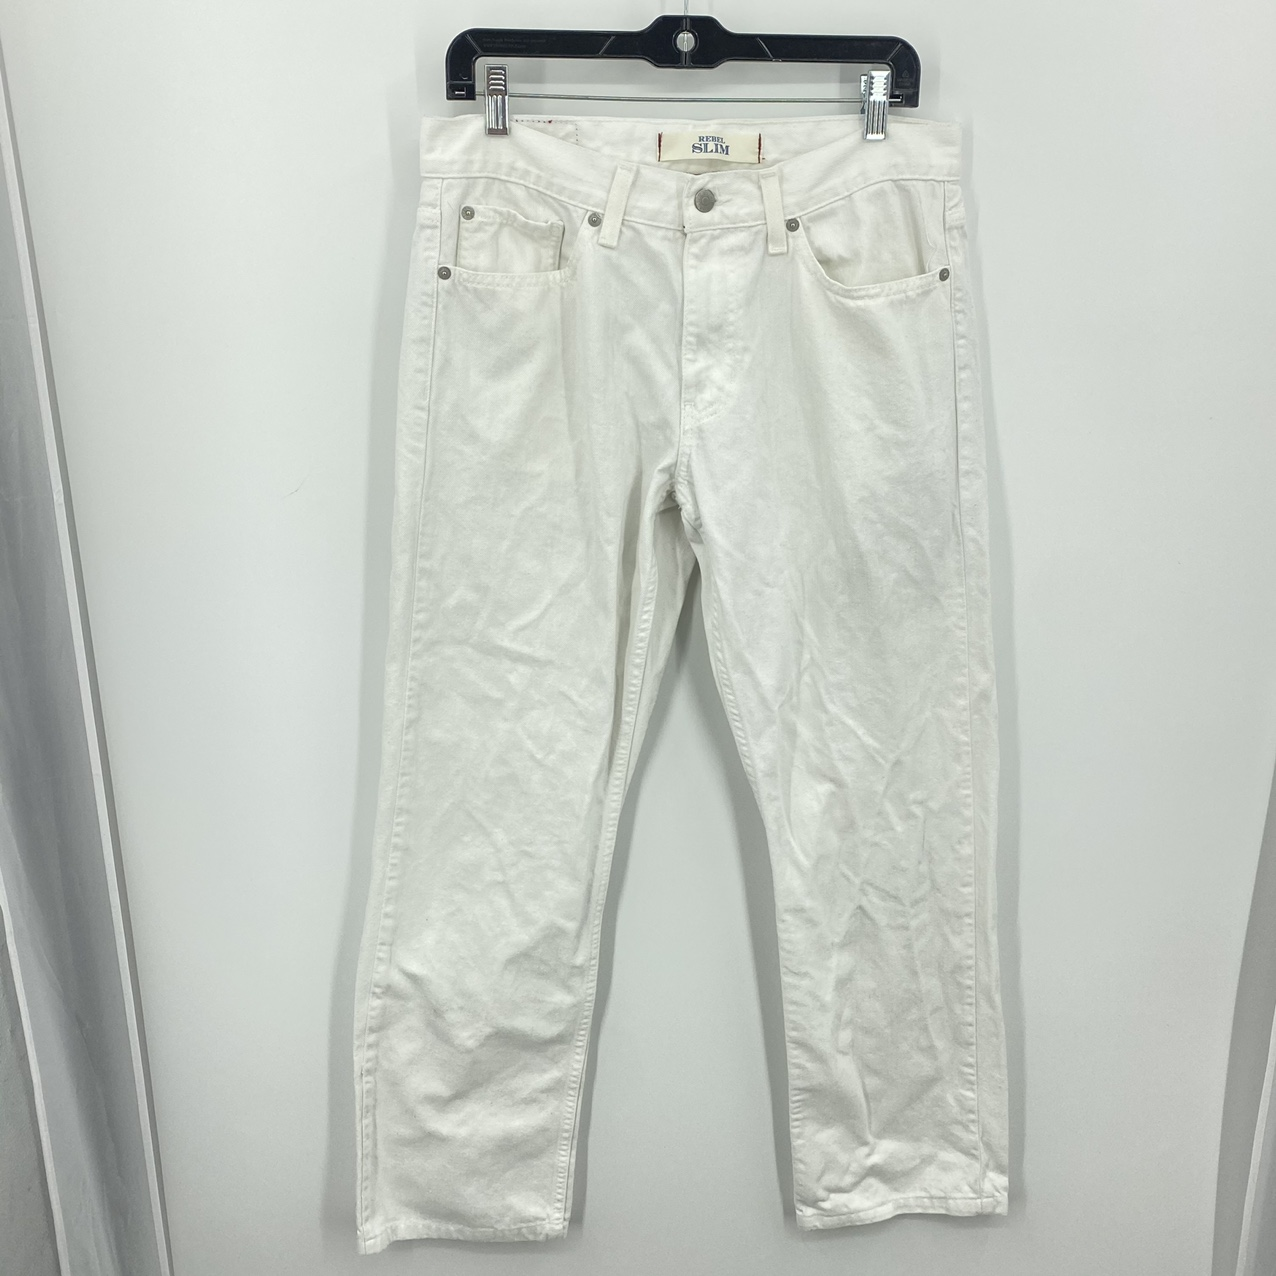 Product Image 1 - Tommy Hilfiger White Jeans Rebel